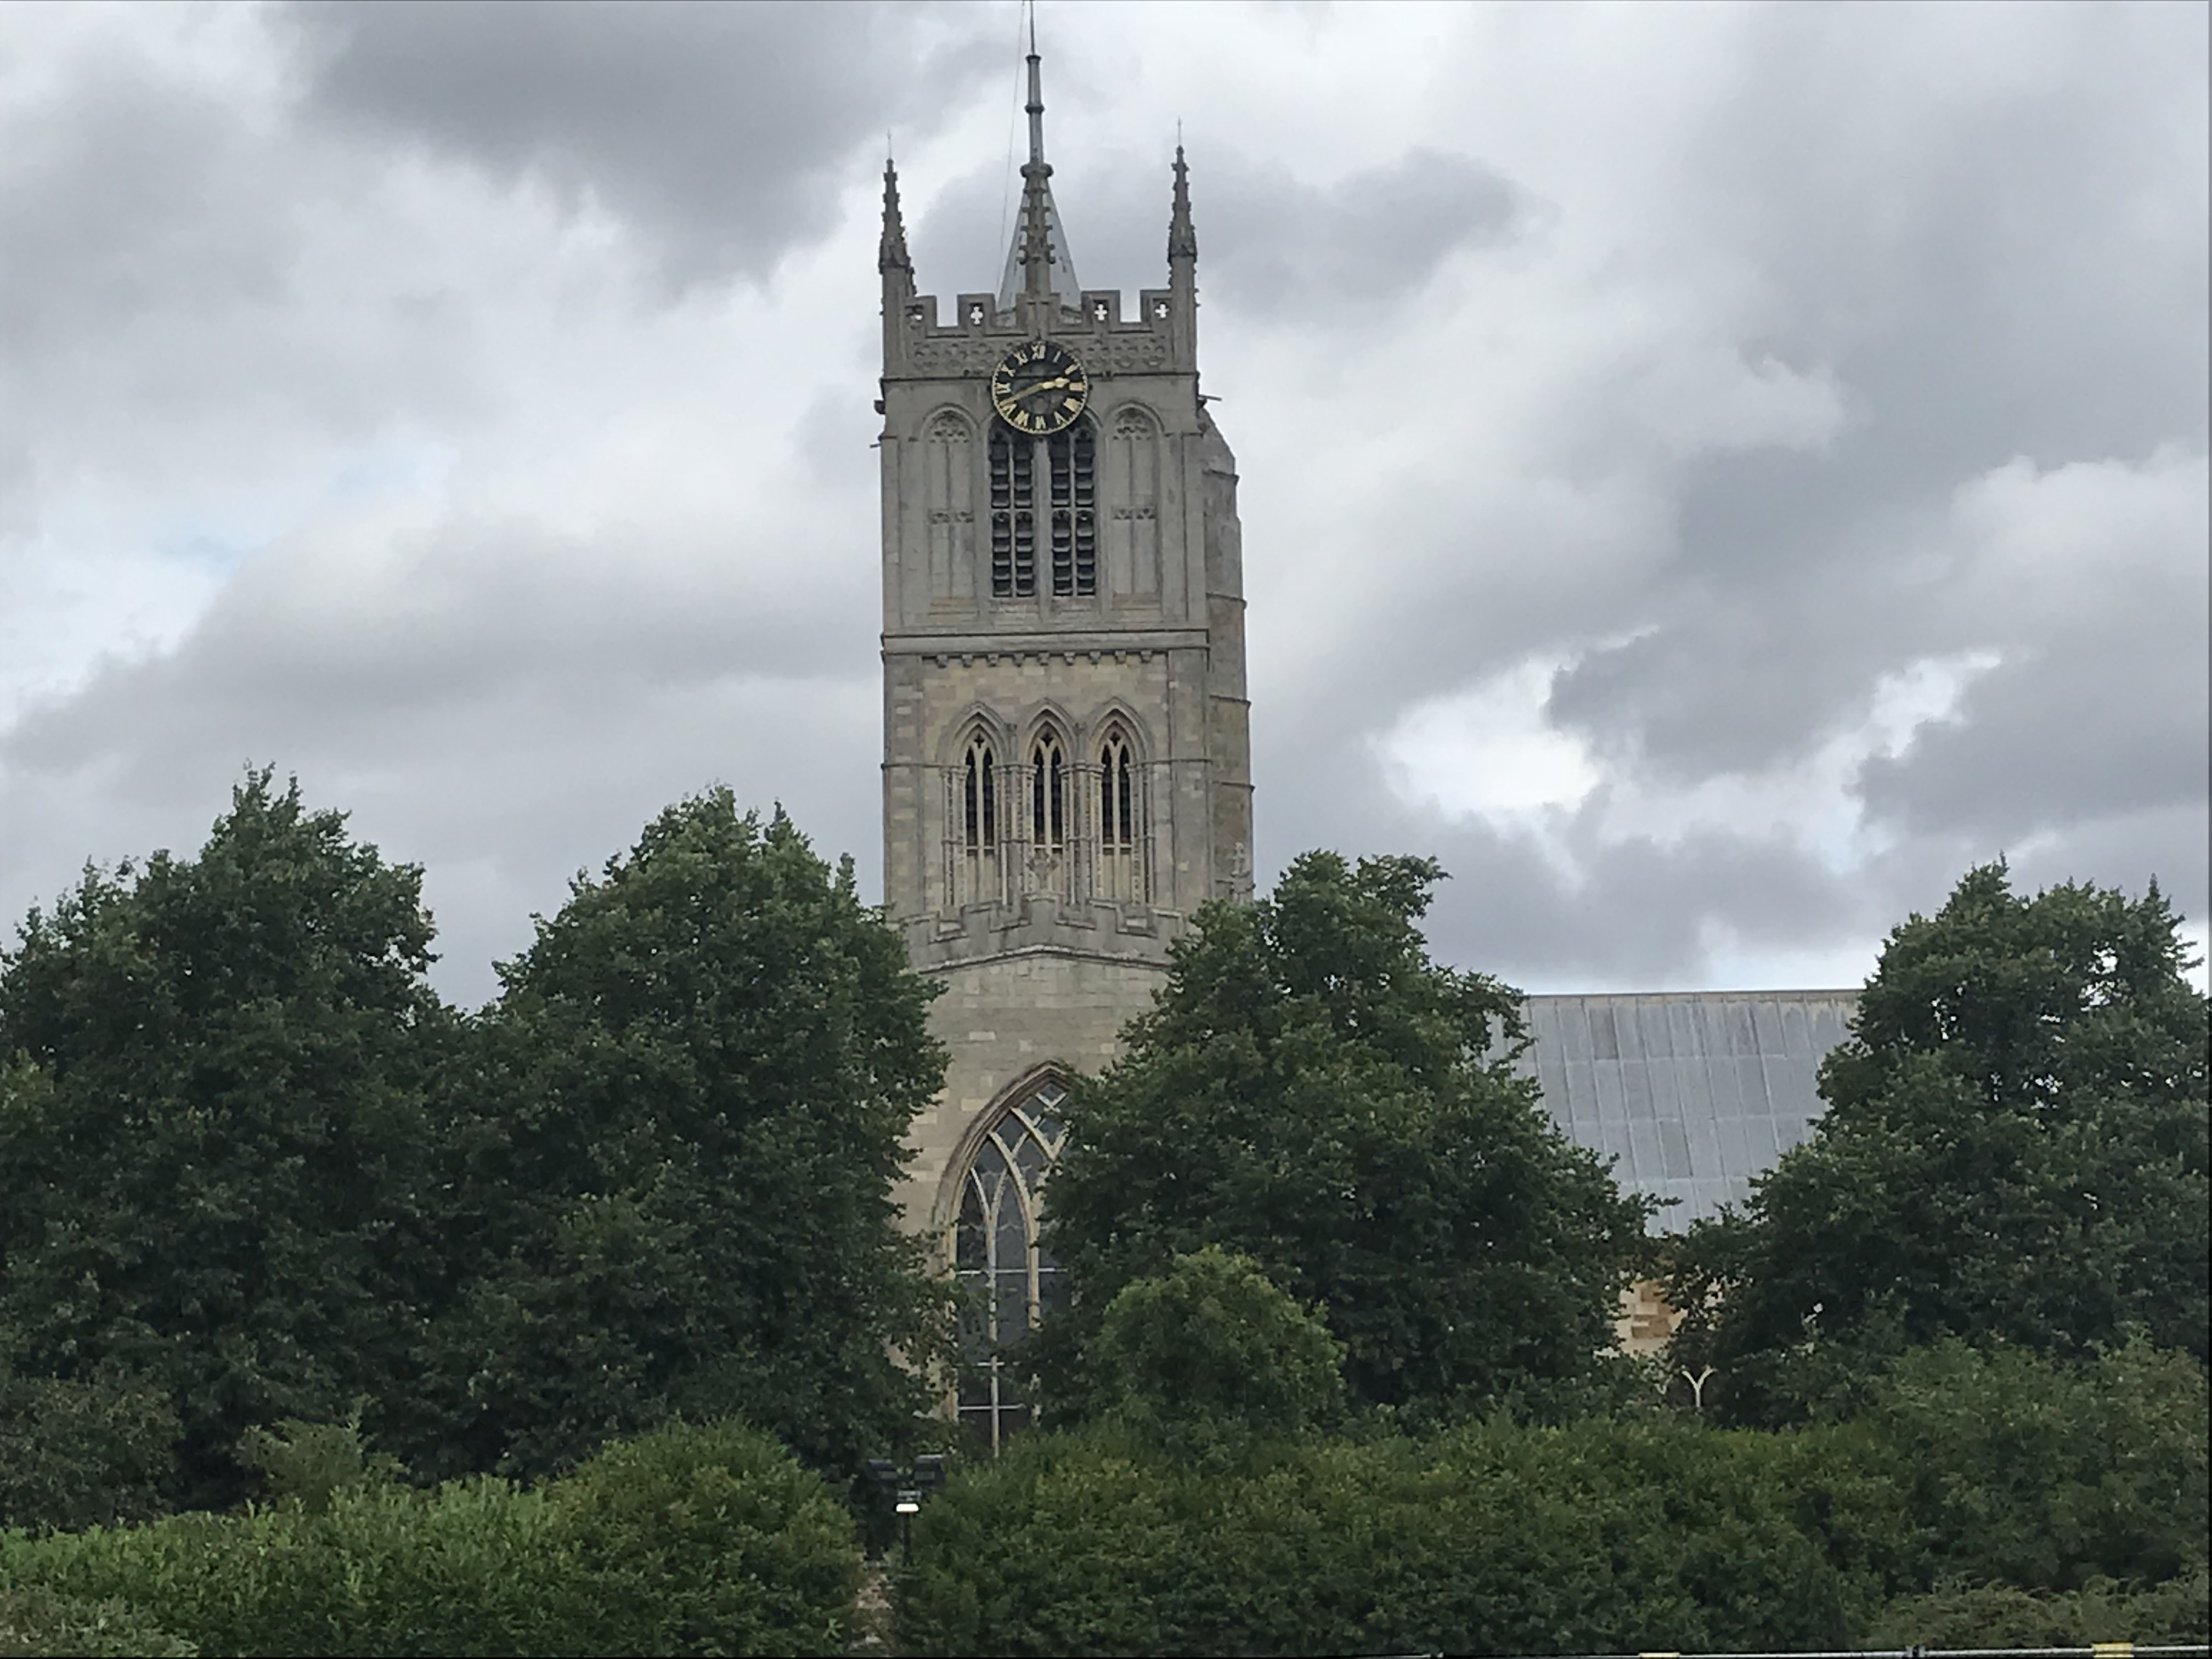 St Mary's Church, Melton Mowbray, Leicestershire